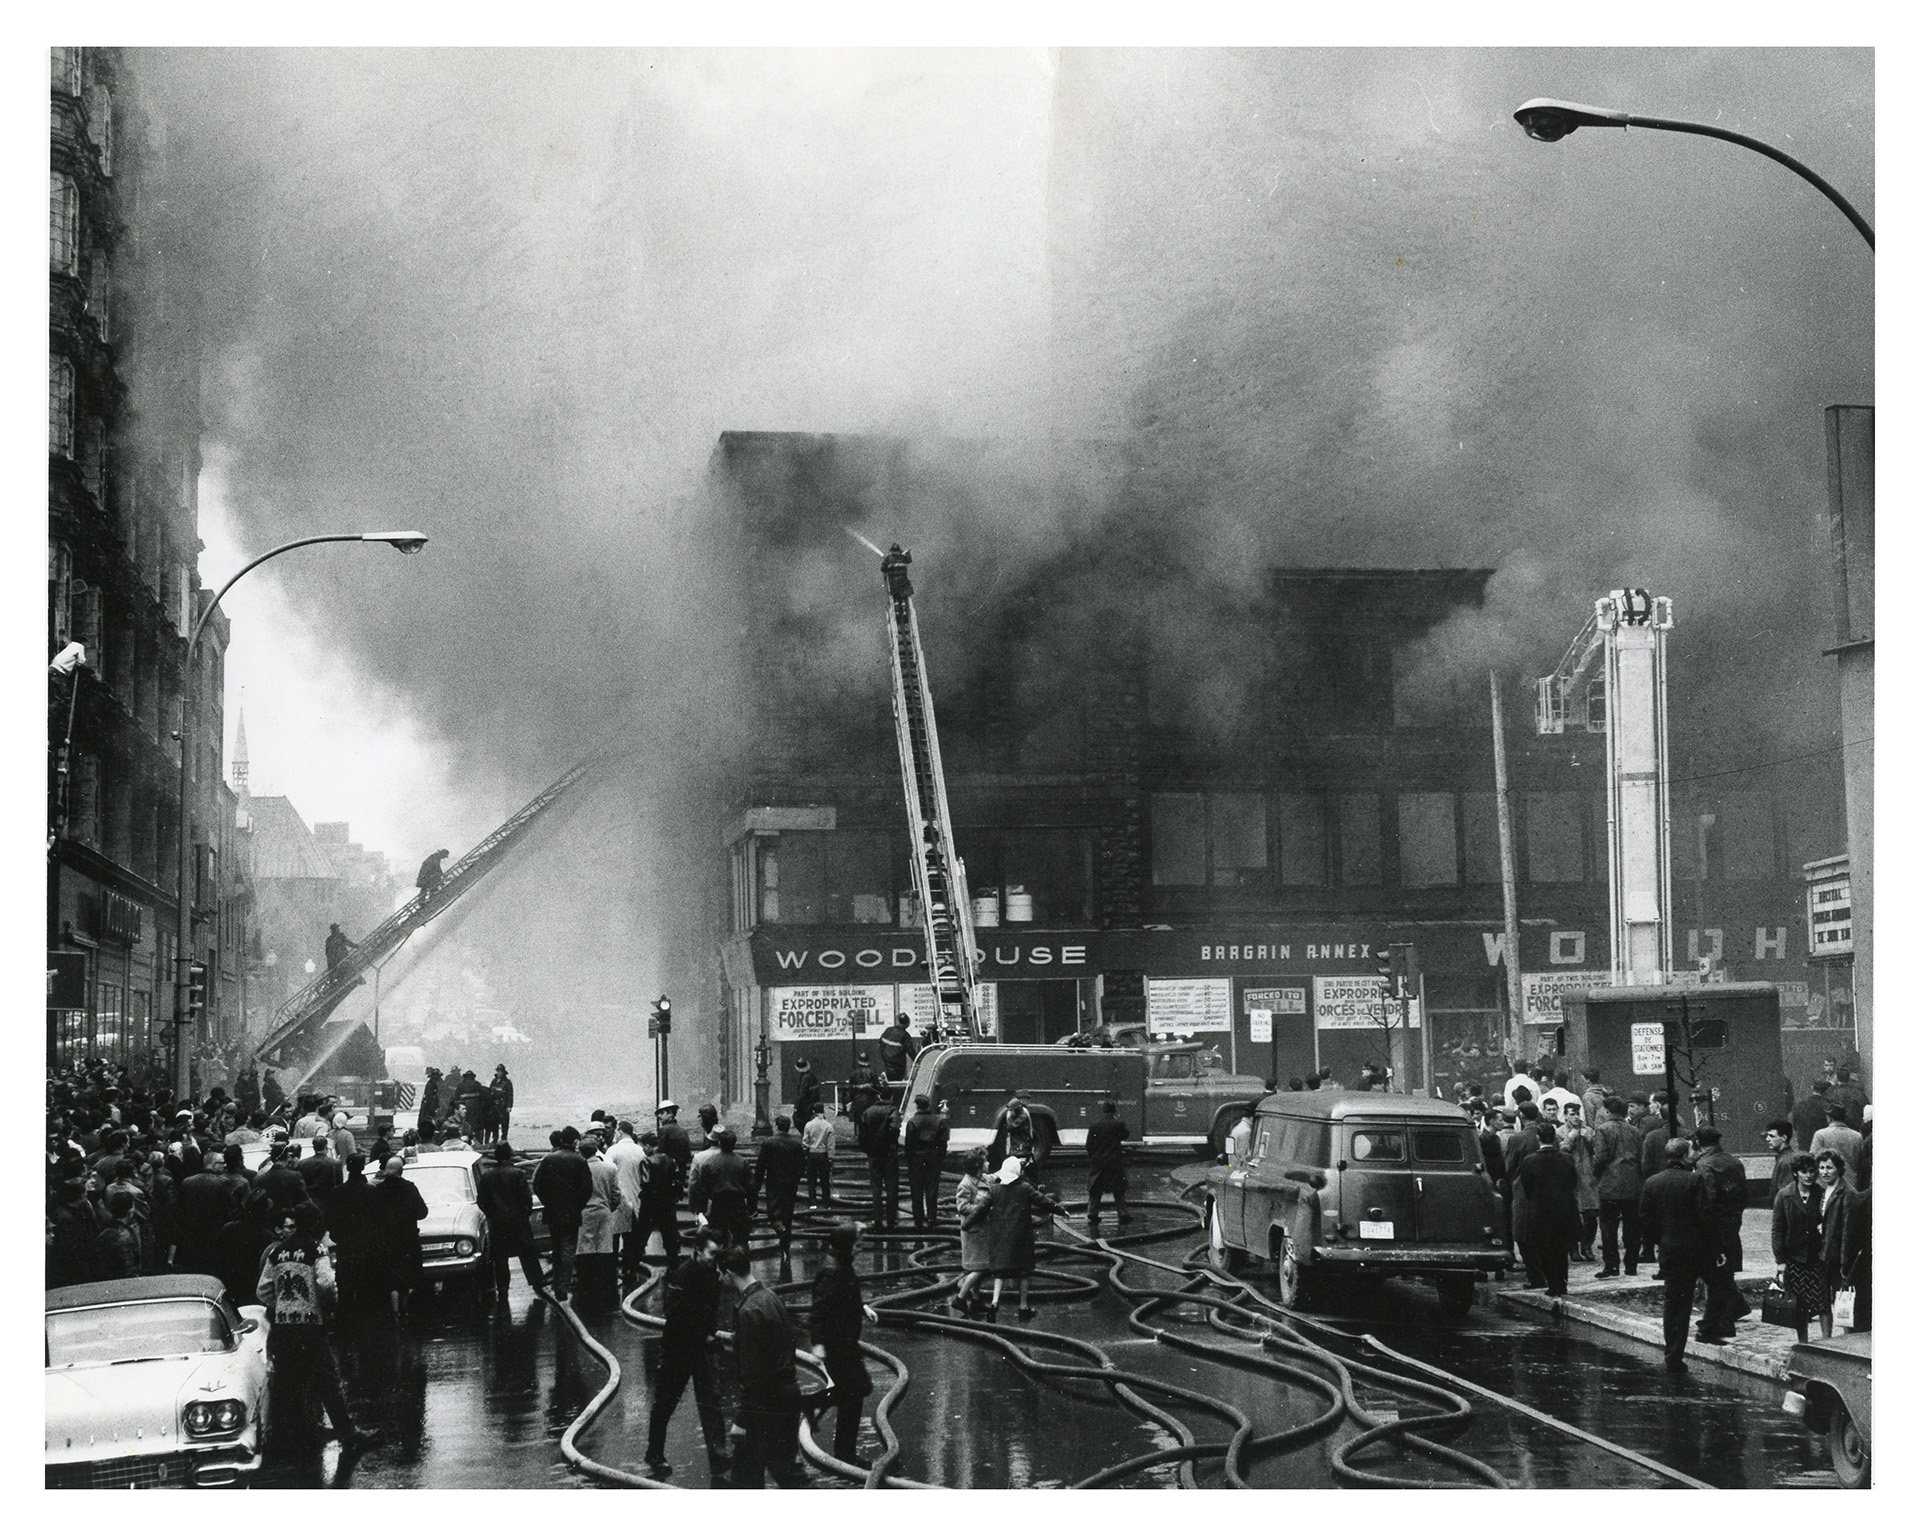 Woodhouse fire April 1963